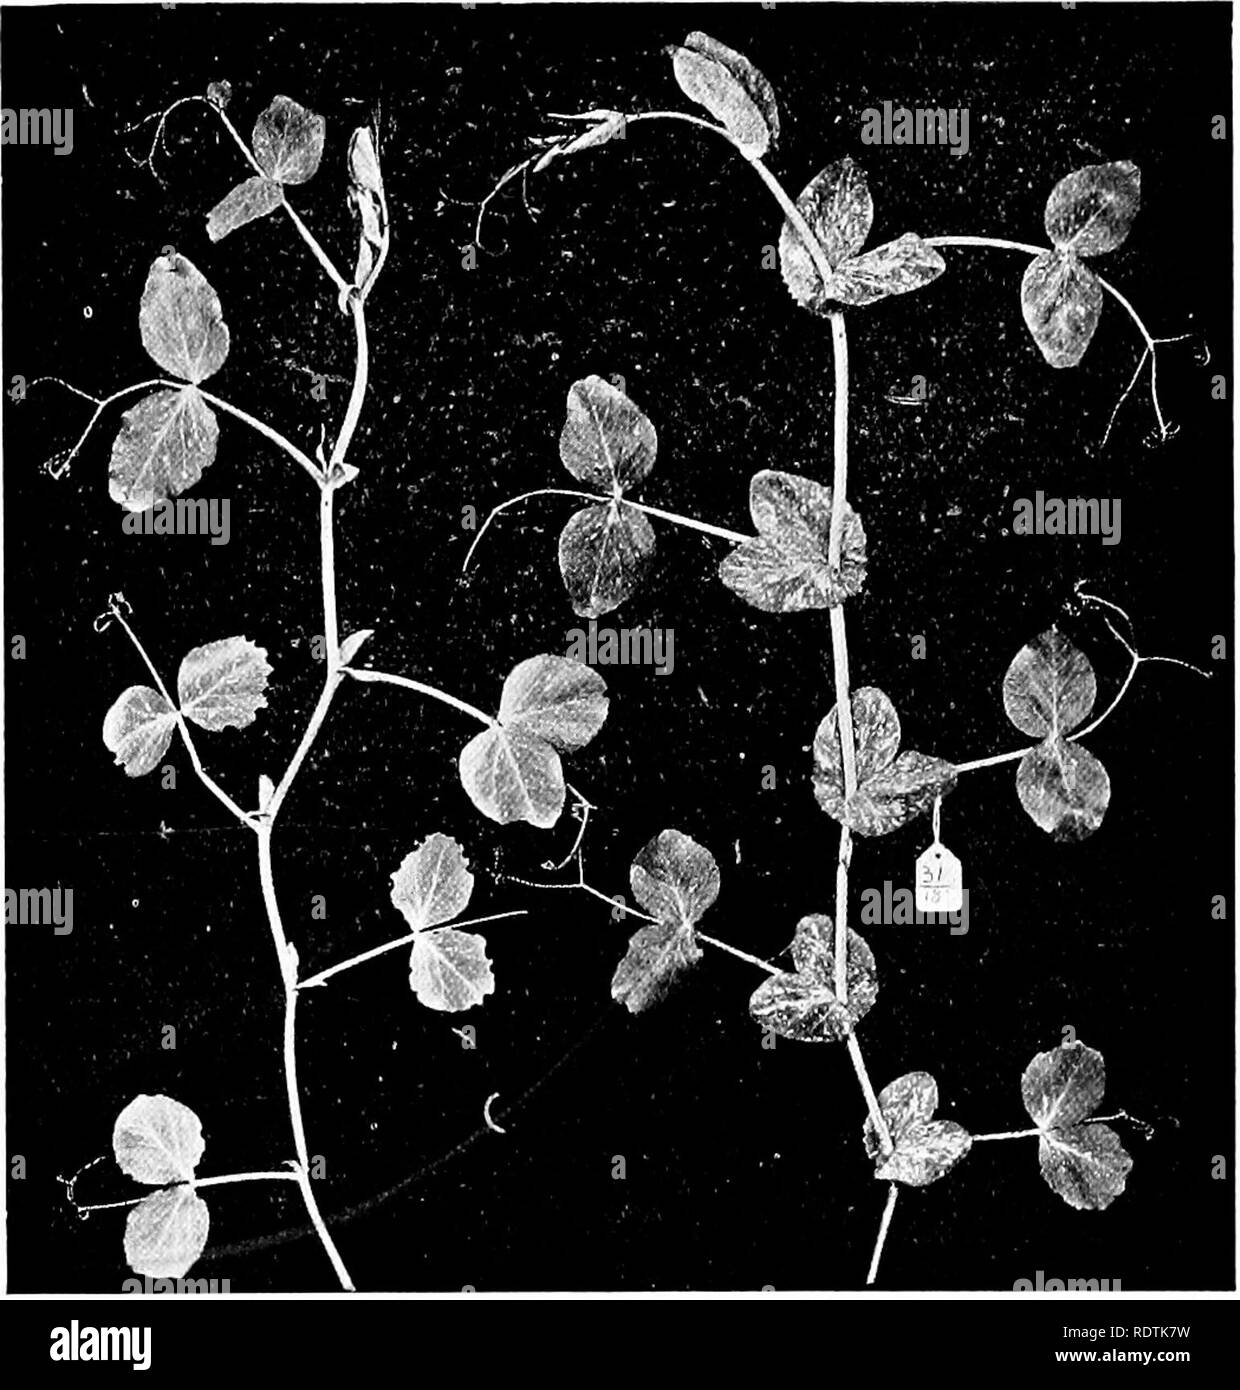 . An introduction to the structure and reproduction of plants. Plant anatomy; Plants. MUTATION 381 Common Yew, from whence it arose, in its darker foliage and cypress-like habit. Detailed studies of mutations were first made by De Vries on a species of Evening Primrose {CEnoihera lamarckiana), which occurred as an escape in a field near Amster- dam, where it was found producing a considerable number of. Fig. 222.—A new form or mutant which arose from a pure strain of Duke of Albany Pea and which differs in the narrow lanceolate sti- pules. The type on the right, the mutant on the left. [By per - Stock Image